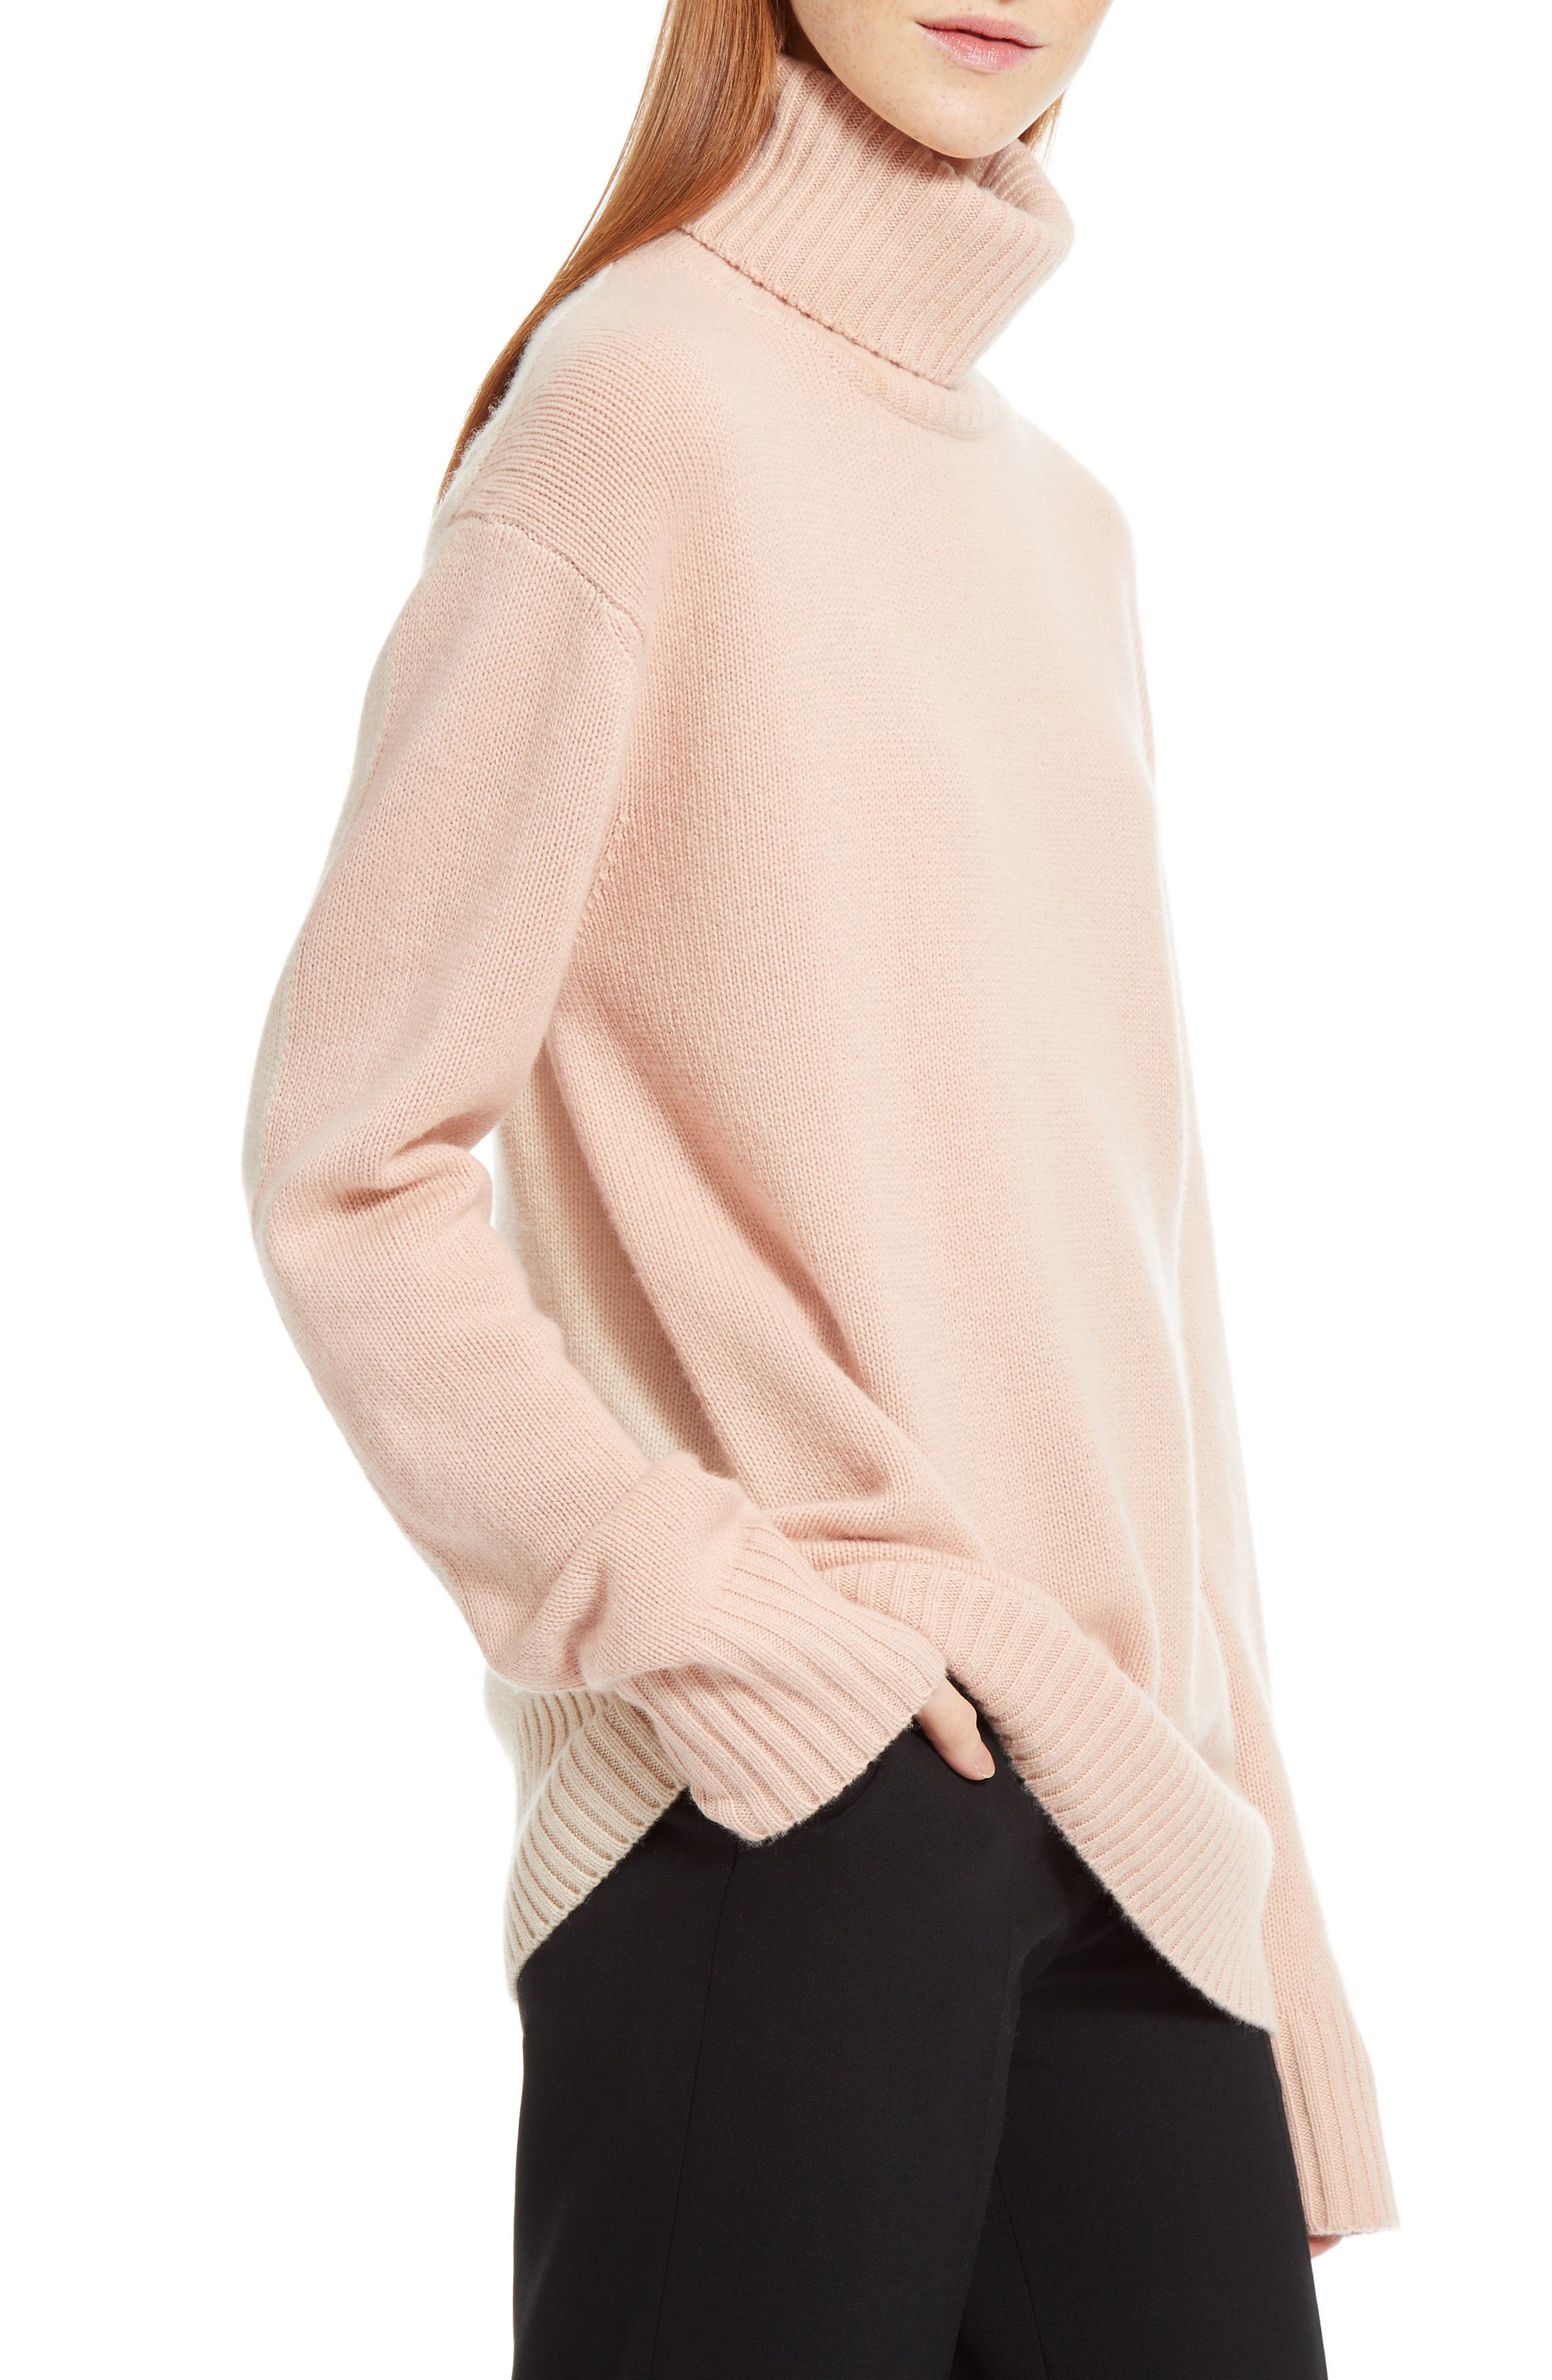 Colorblock Cashmere Turtleneck Sweater,                             Alternate thumbnail 5, color,                             Pink/ Beige